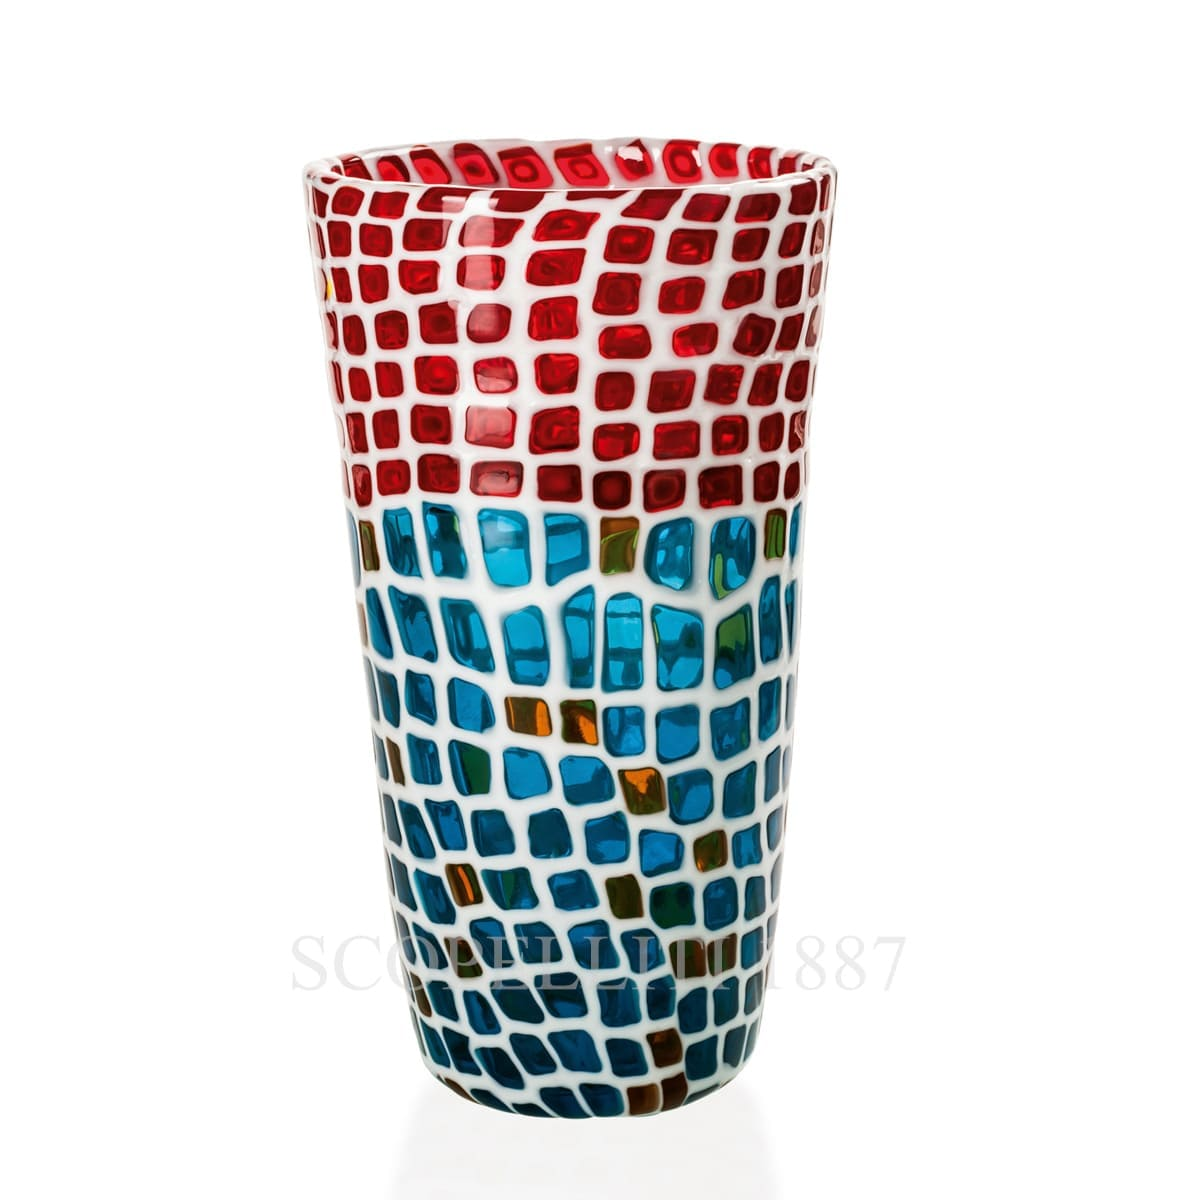 Venini Murrine Ravenna Vase limited edition